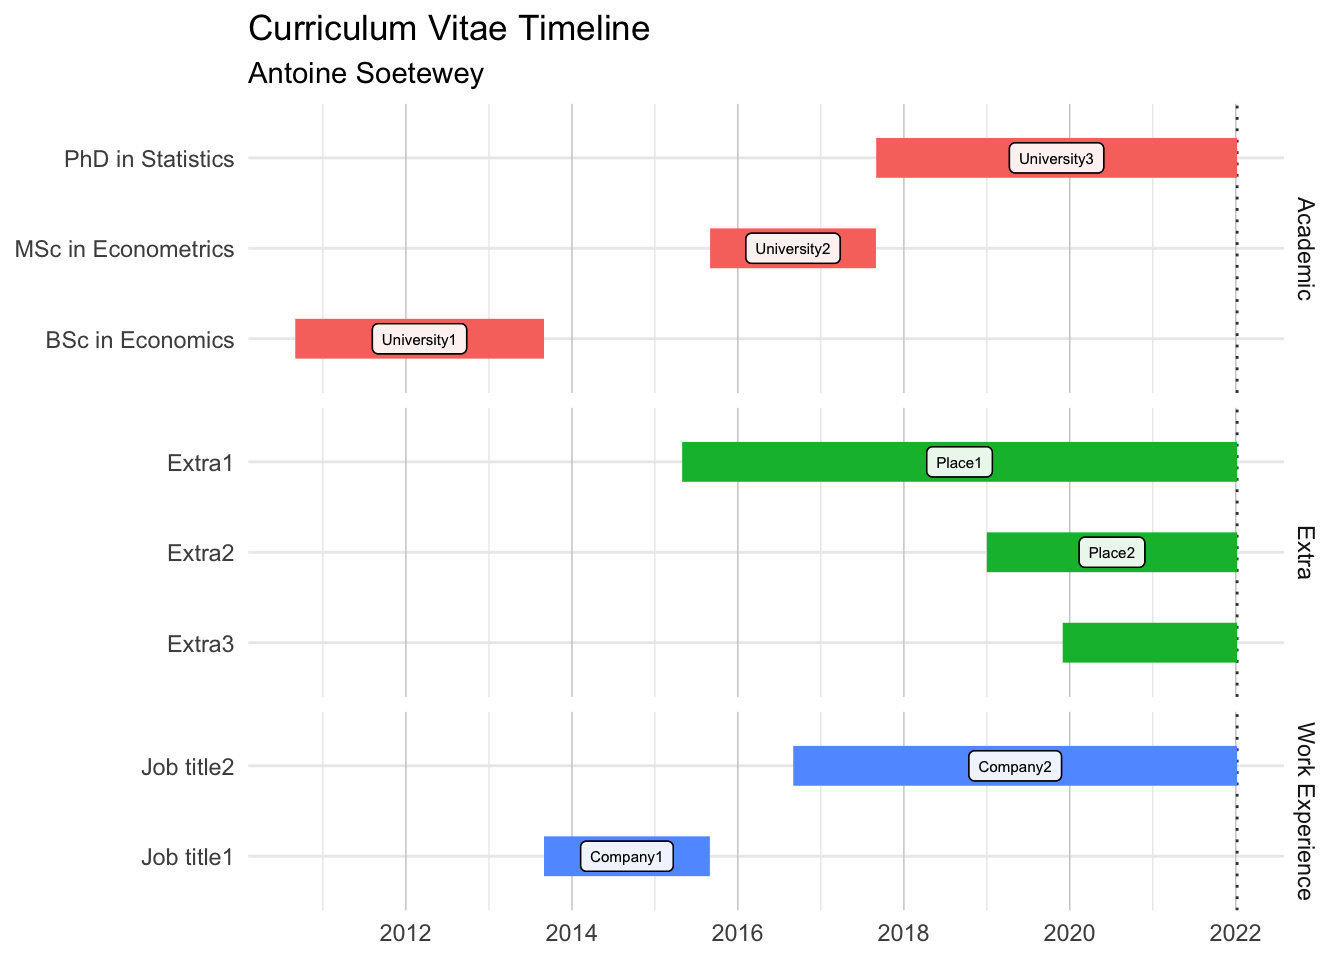 How to create a timeline of your CV in R